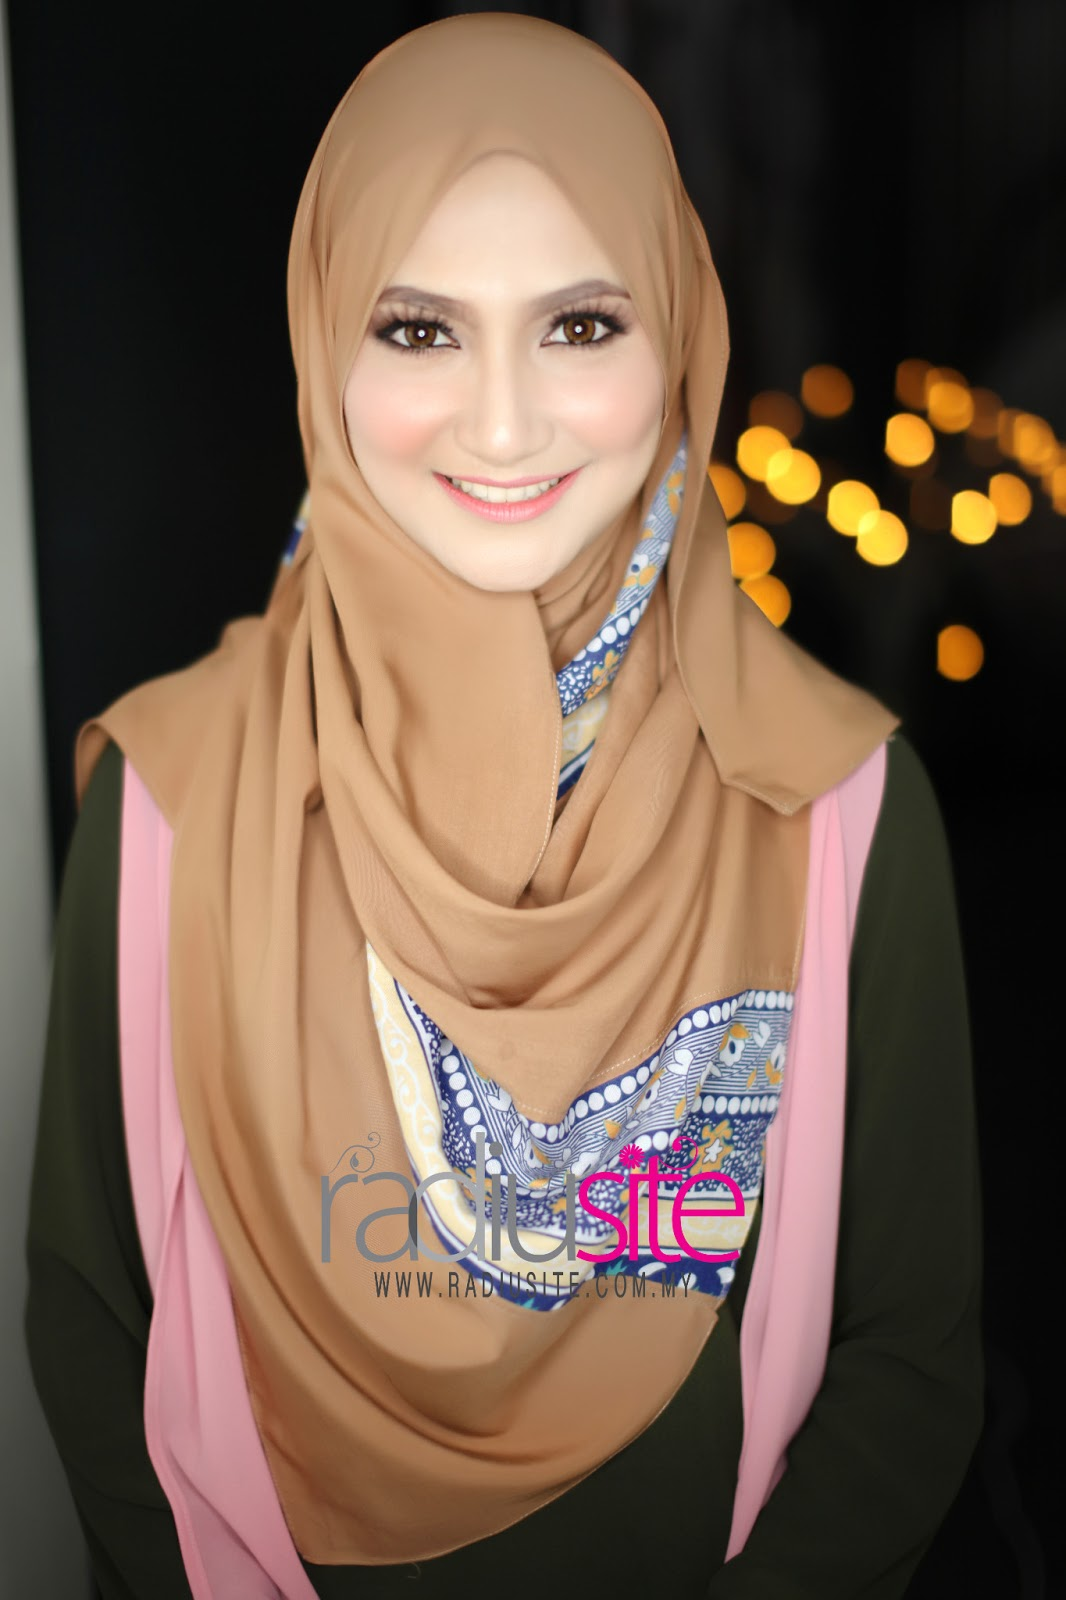 Radiusite Shawl http://www.radiusite.com/2013/04/adra-limited-edition-04-april-2013-11-am.html